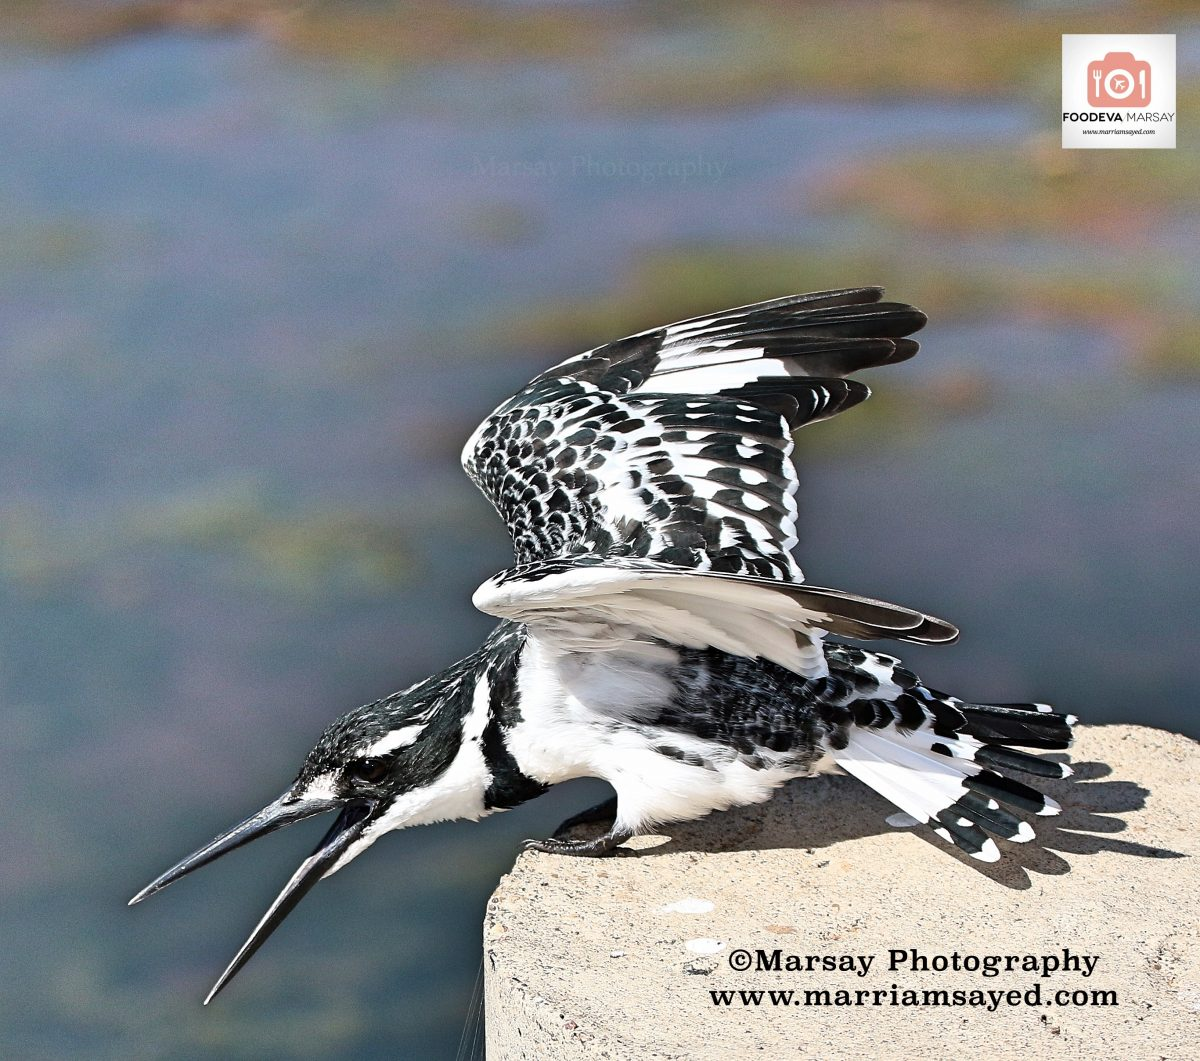 pied-kingfisher-wings-with-watermark-with-foodeva-sign-1200x1061.jpg